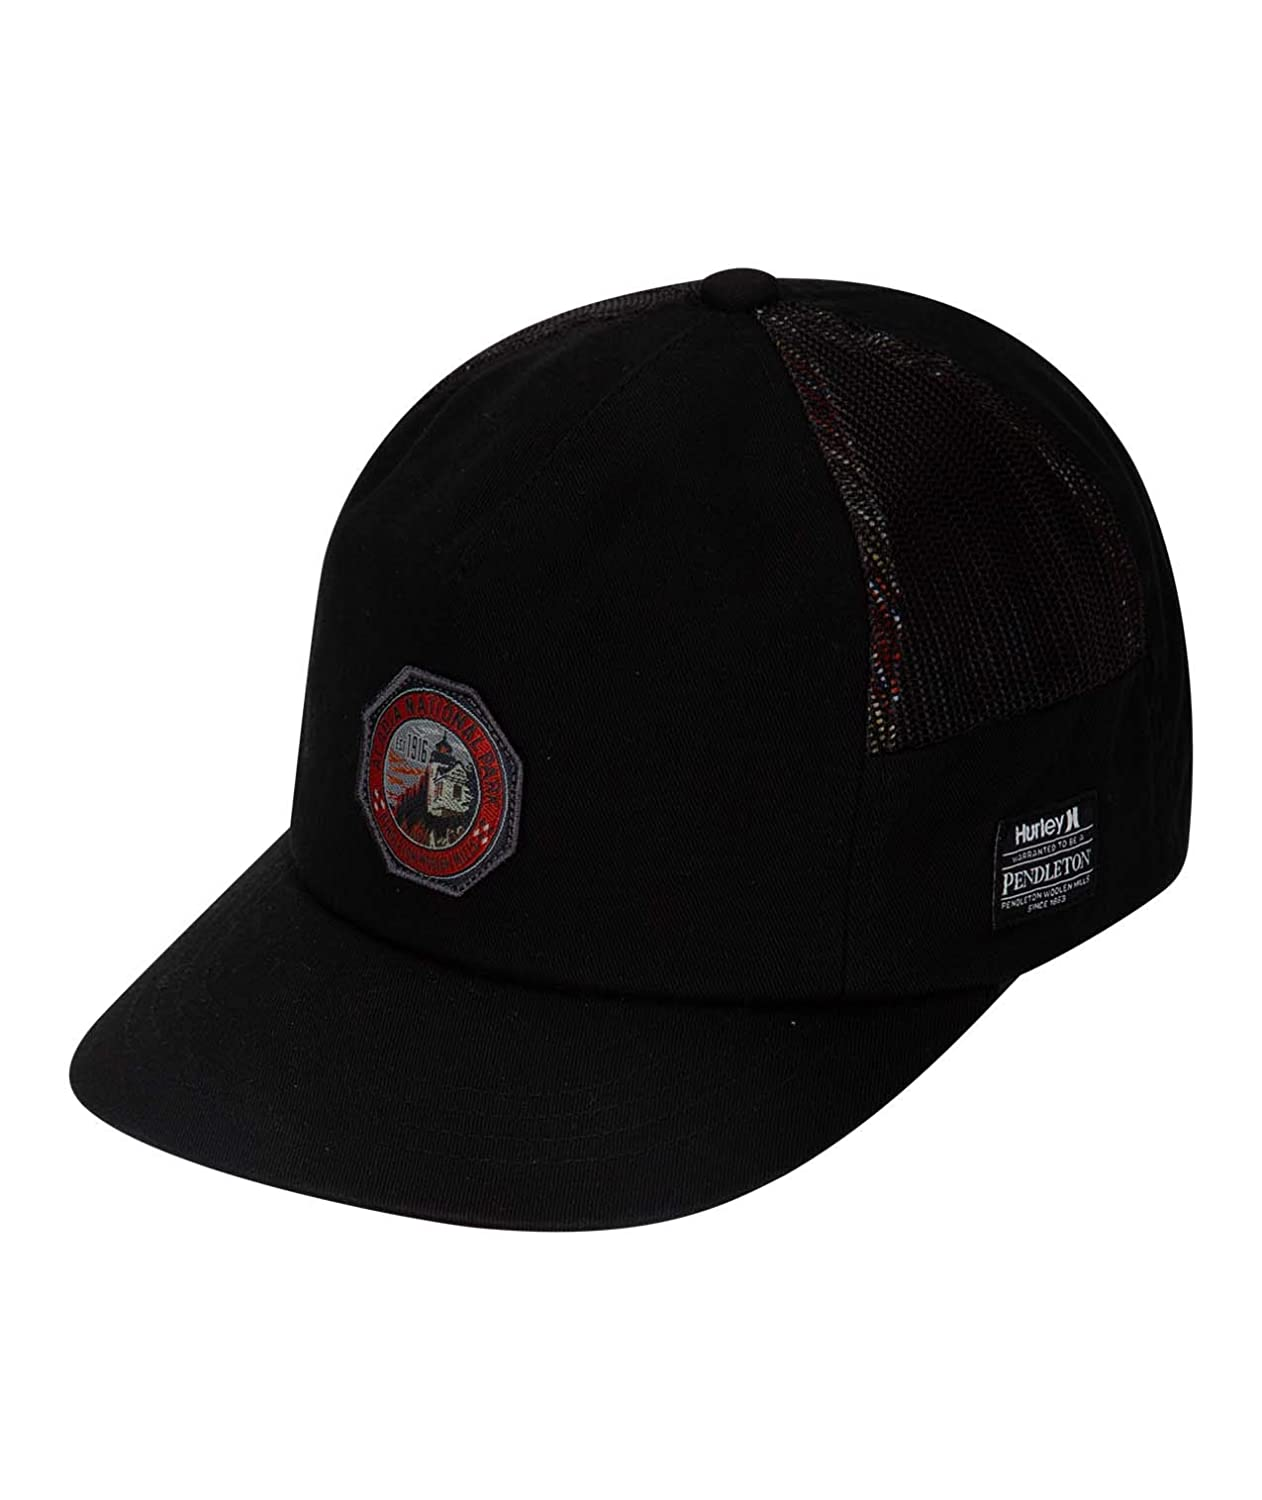 sports shoes aa881 5e82a Hurley Men s Pendleton National Park Collection Cap, Black Qty at Amazon  Men s Clothing store